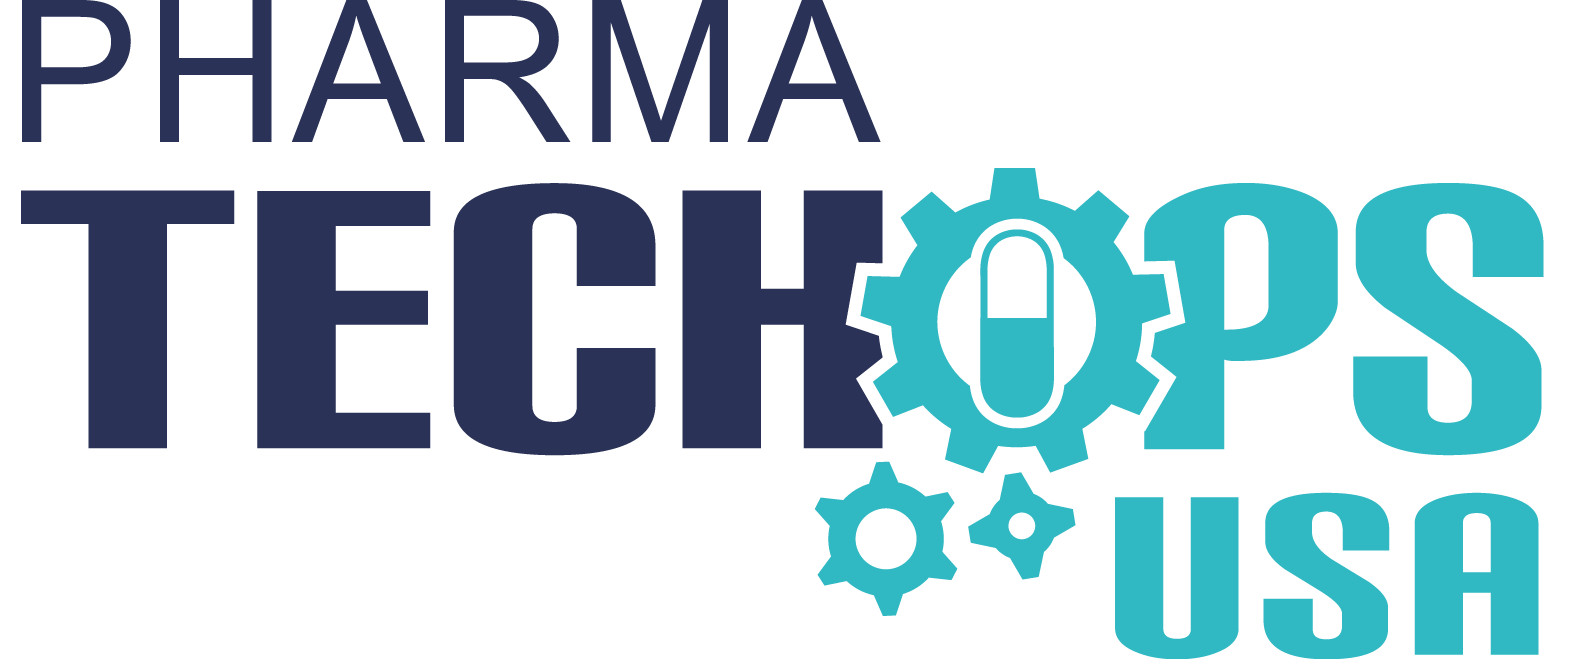 2020 Tech Events Pharma Tech Ops